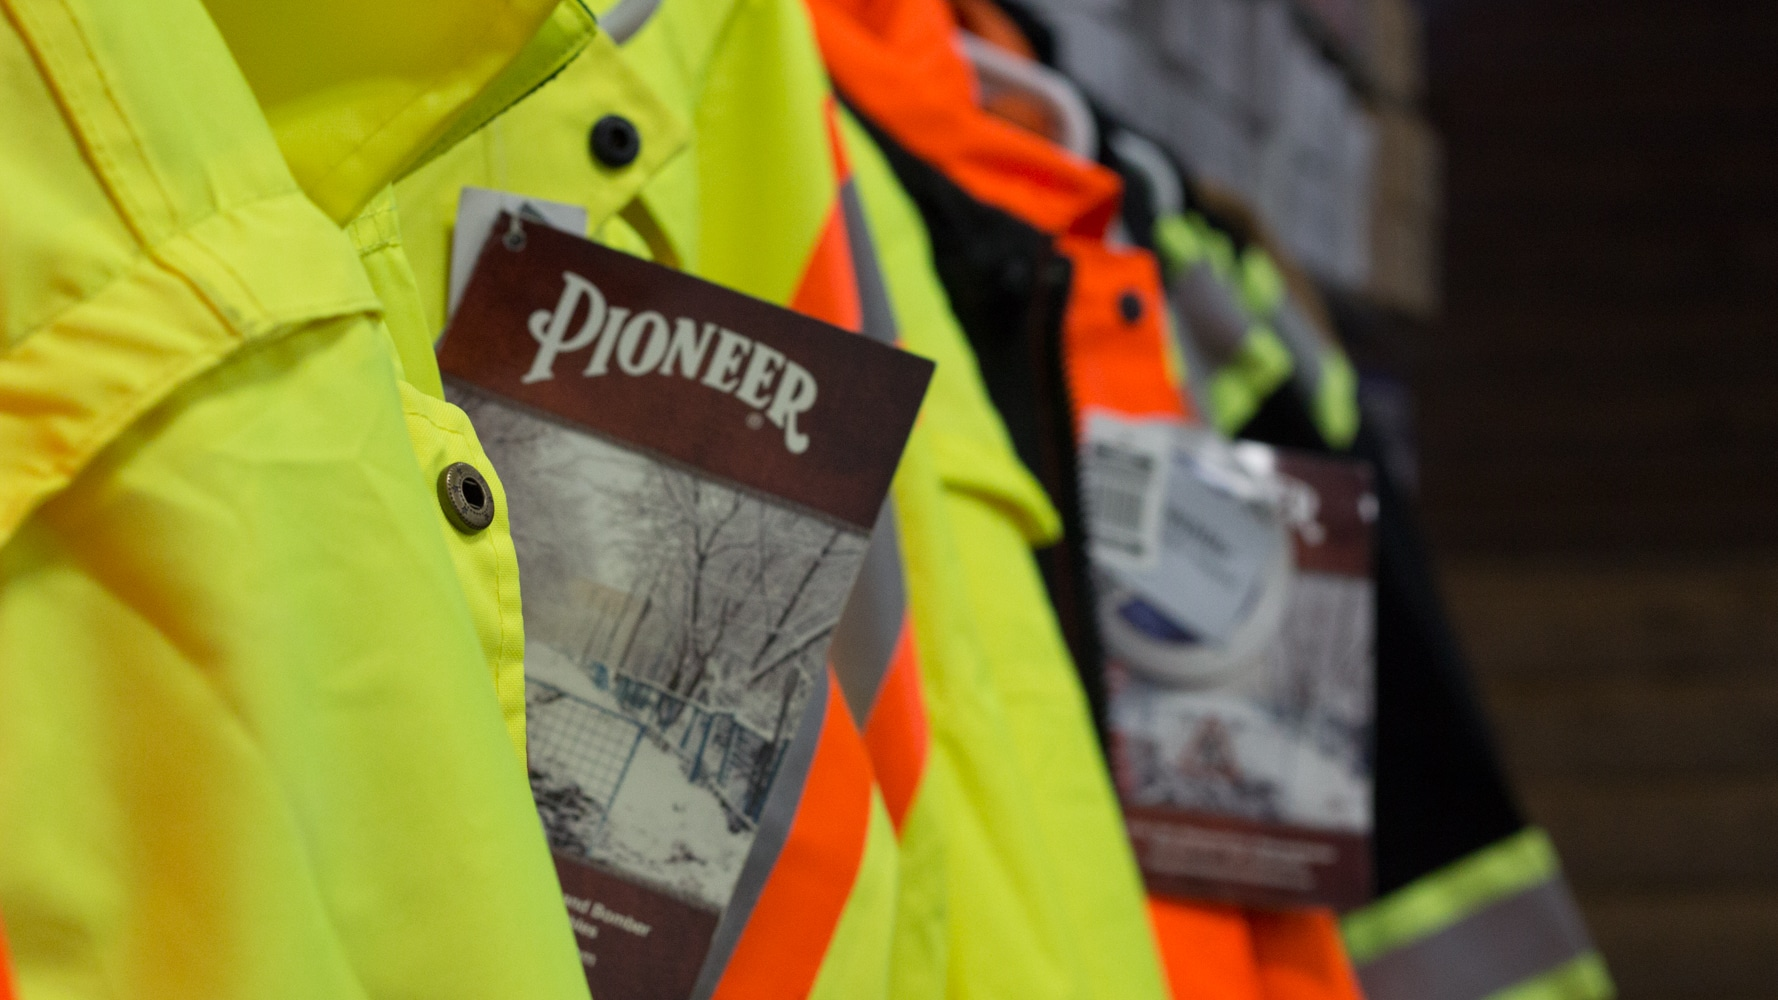 Pioneer Work Clothing - Safety Jacket